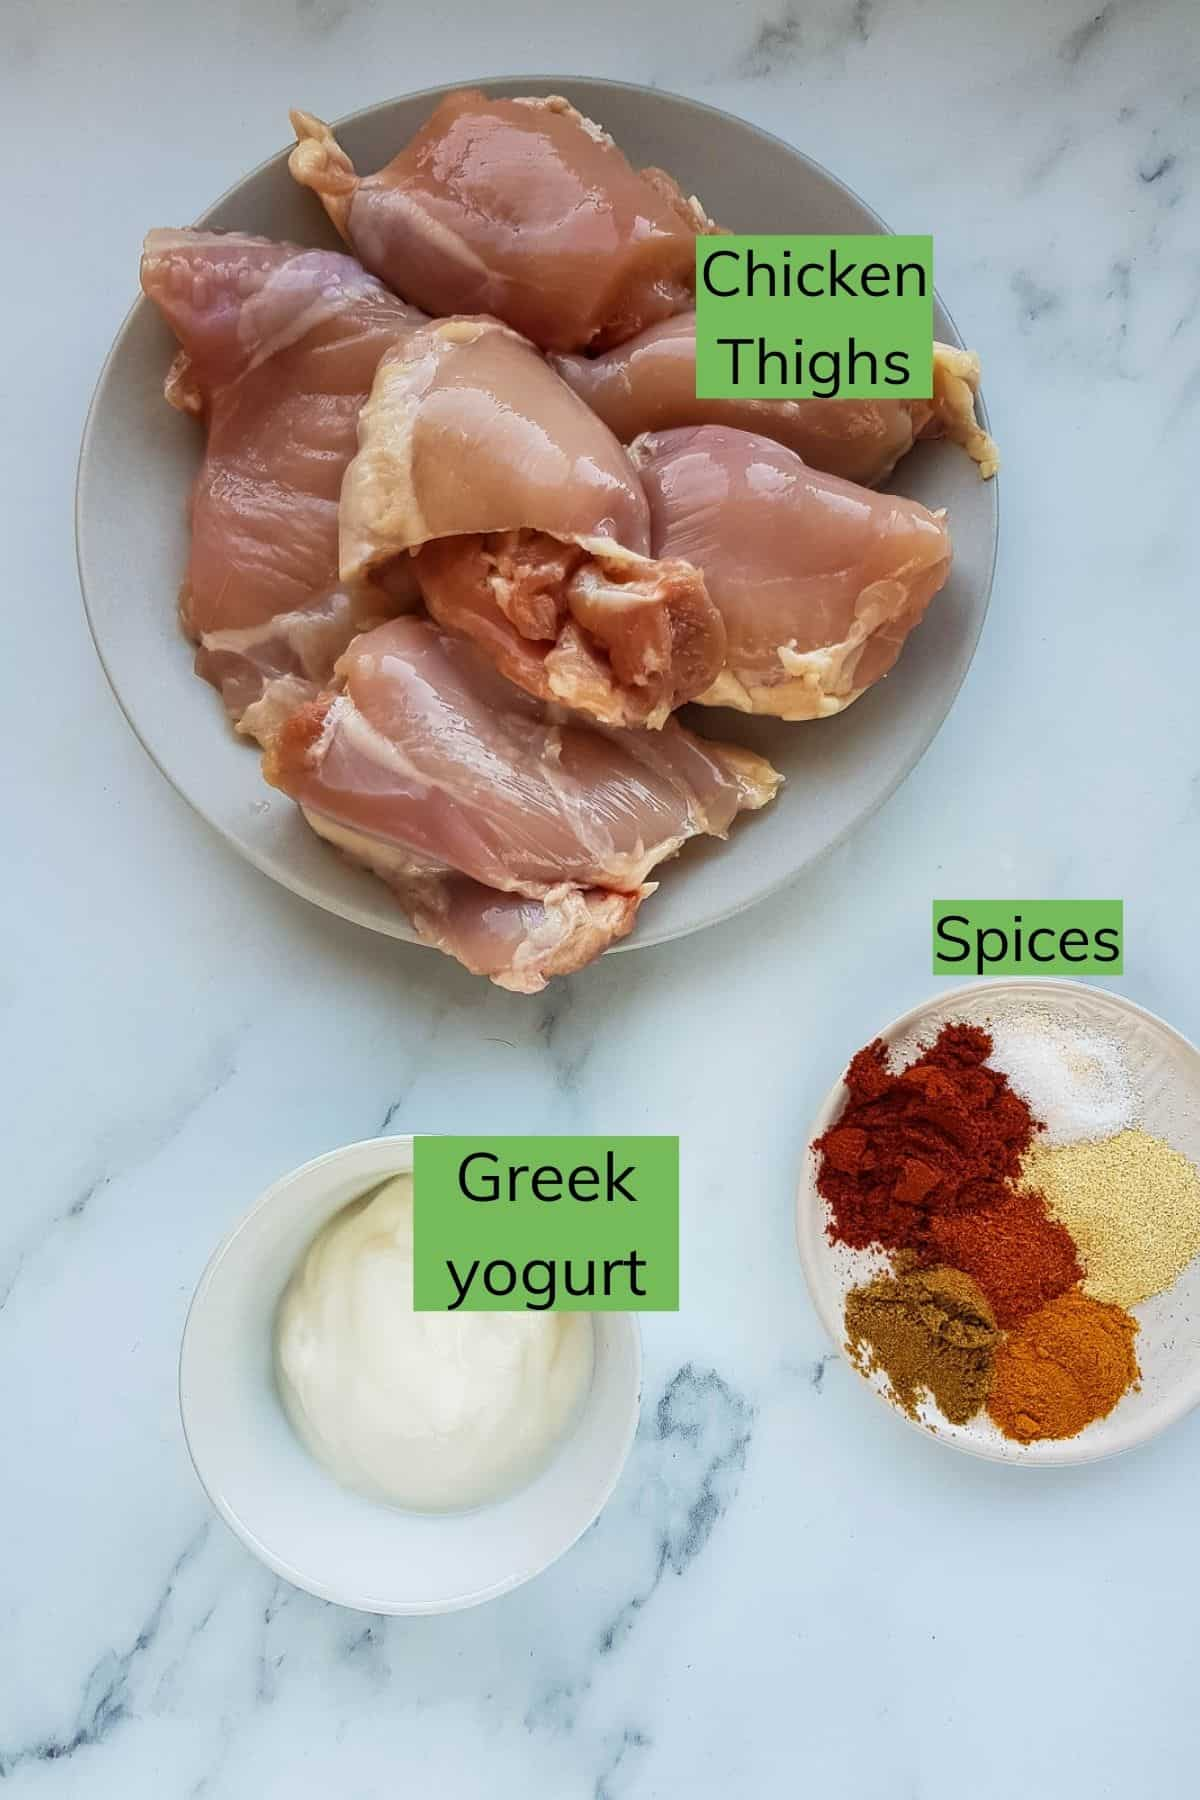 Greek yogurt, chicken thighs and spices laid out on a table.